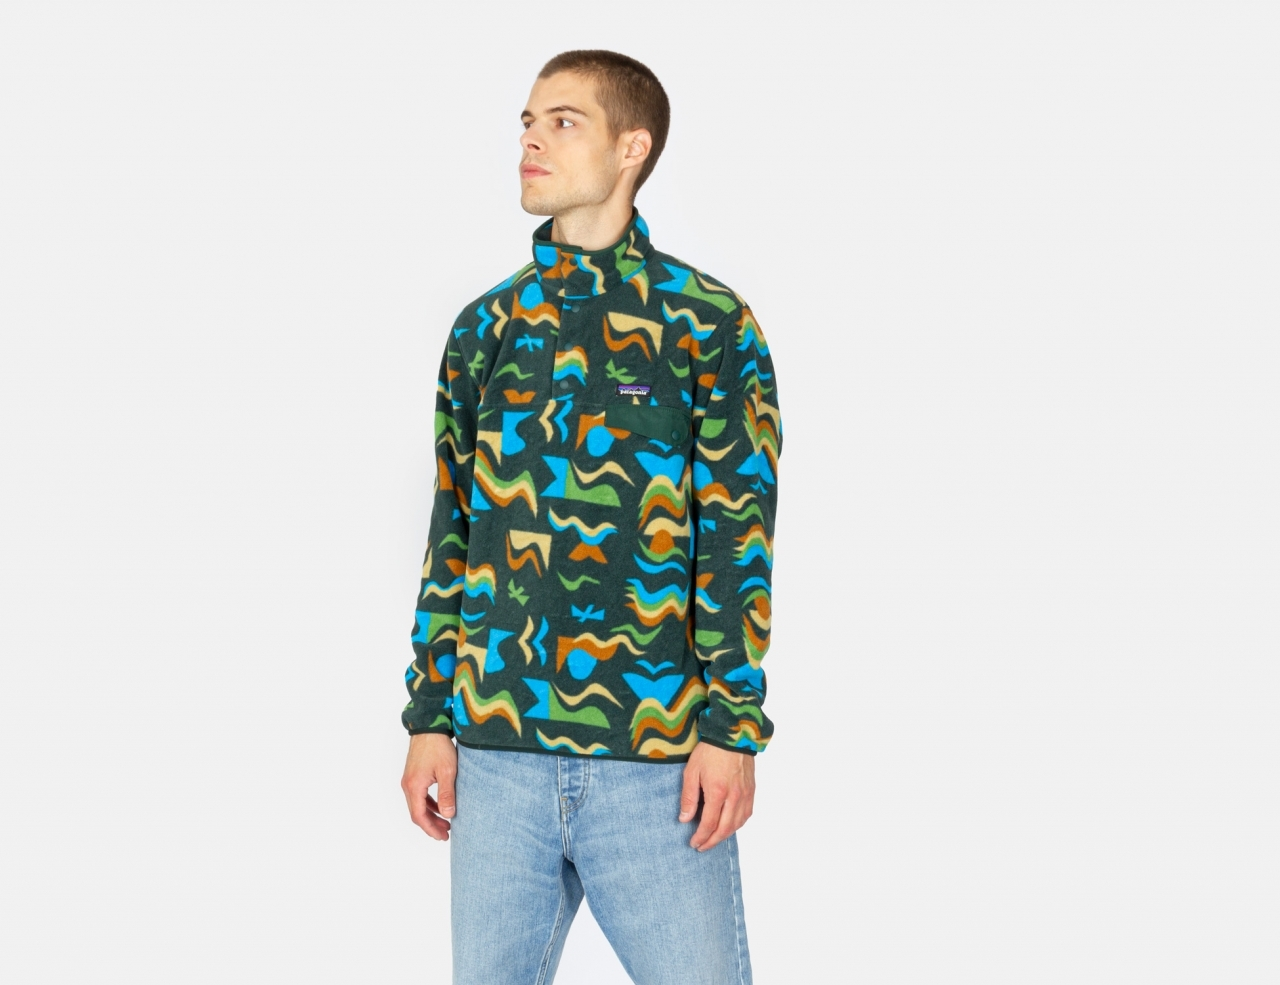 Patagonia Lightweight Synch Snap-T Pullover - Arctic Collage: Northern Green